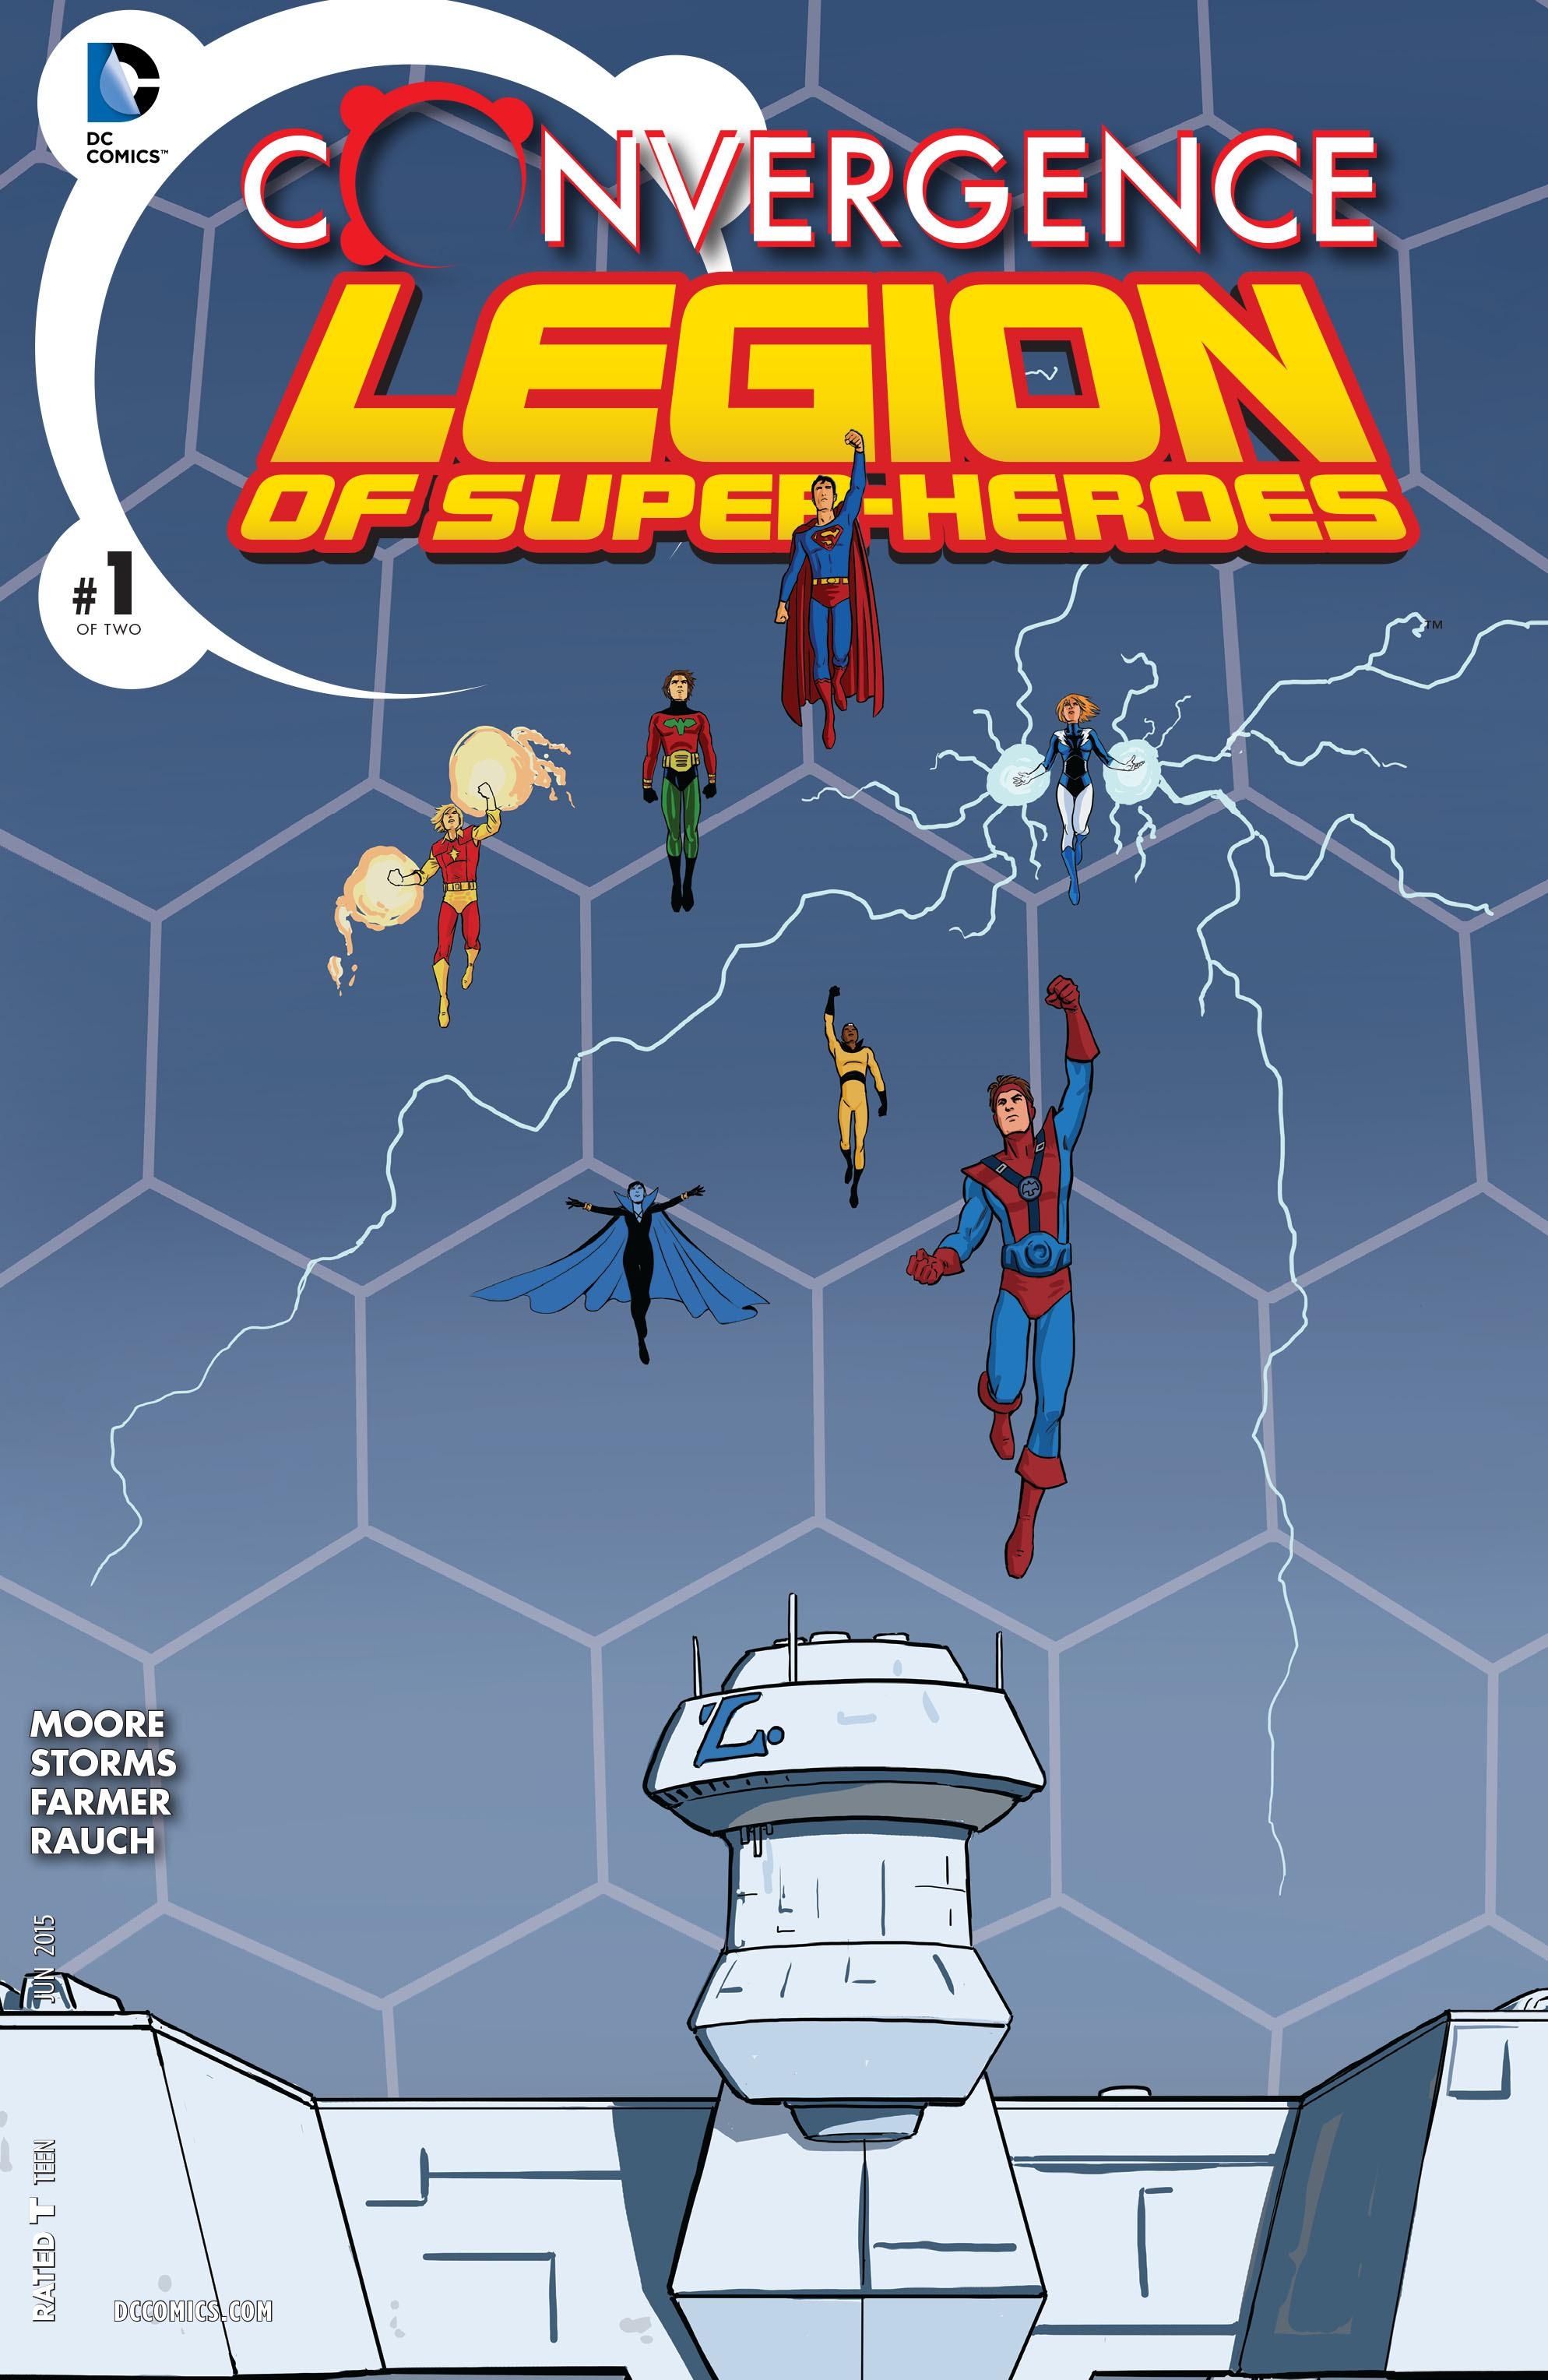 Convergence: Superboy and the Legion of Super-Heroes Vol 1